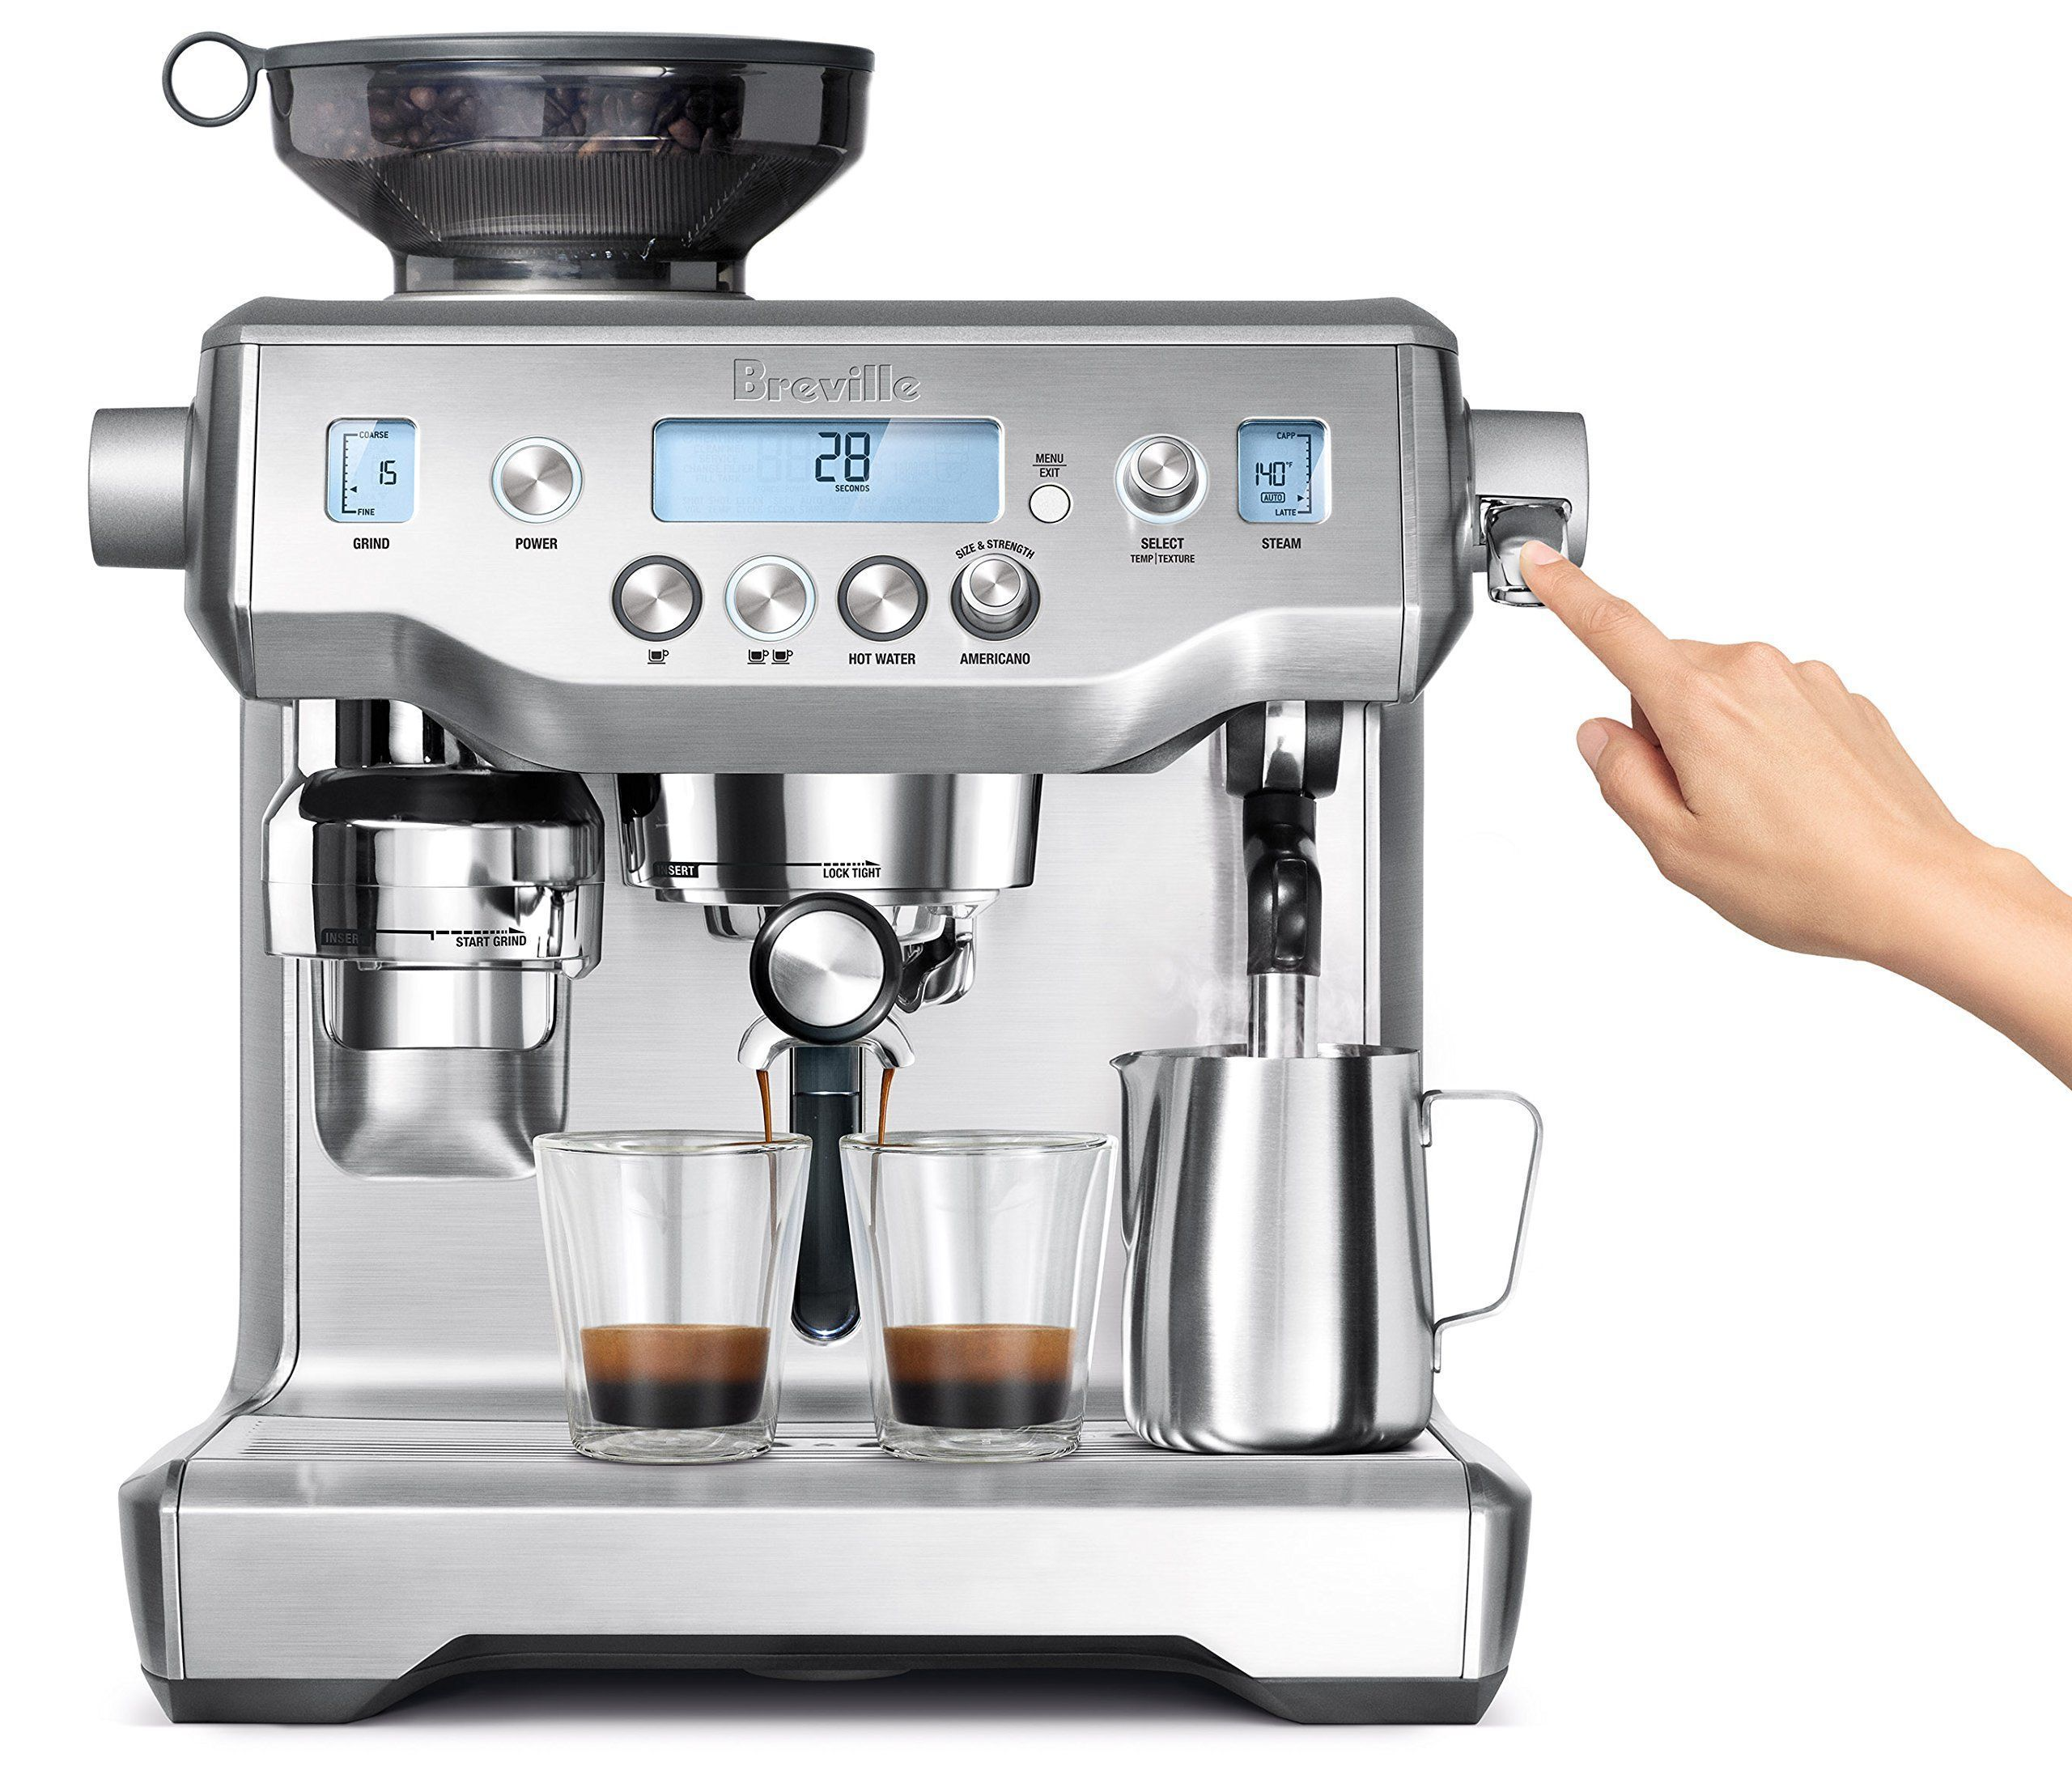 Breville Bes980xl Oracle Espresso Machine Brushed Stainless Steel Want To Know More Click Espresso Machine Best Espresso Machine Espresso Machine Reviews